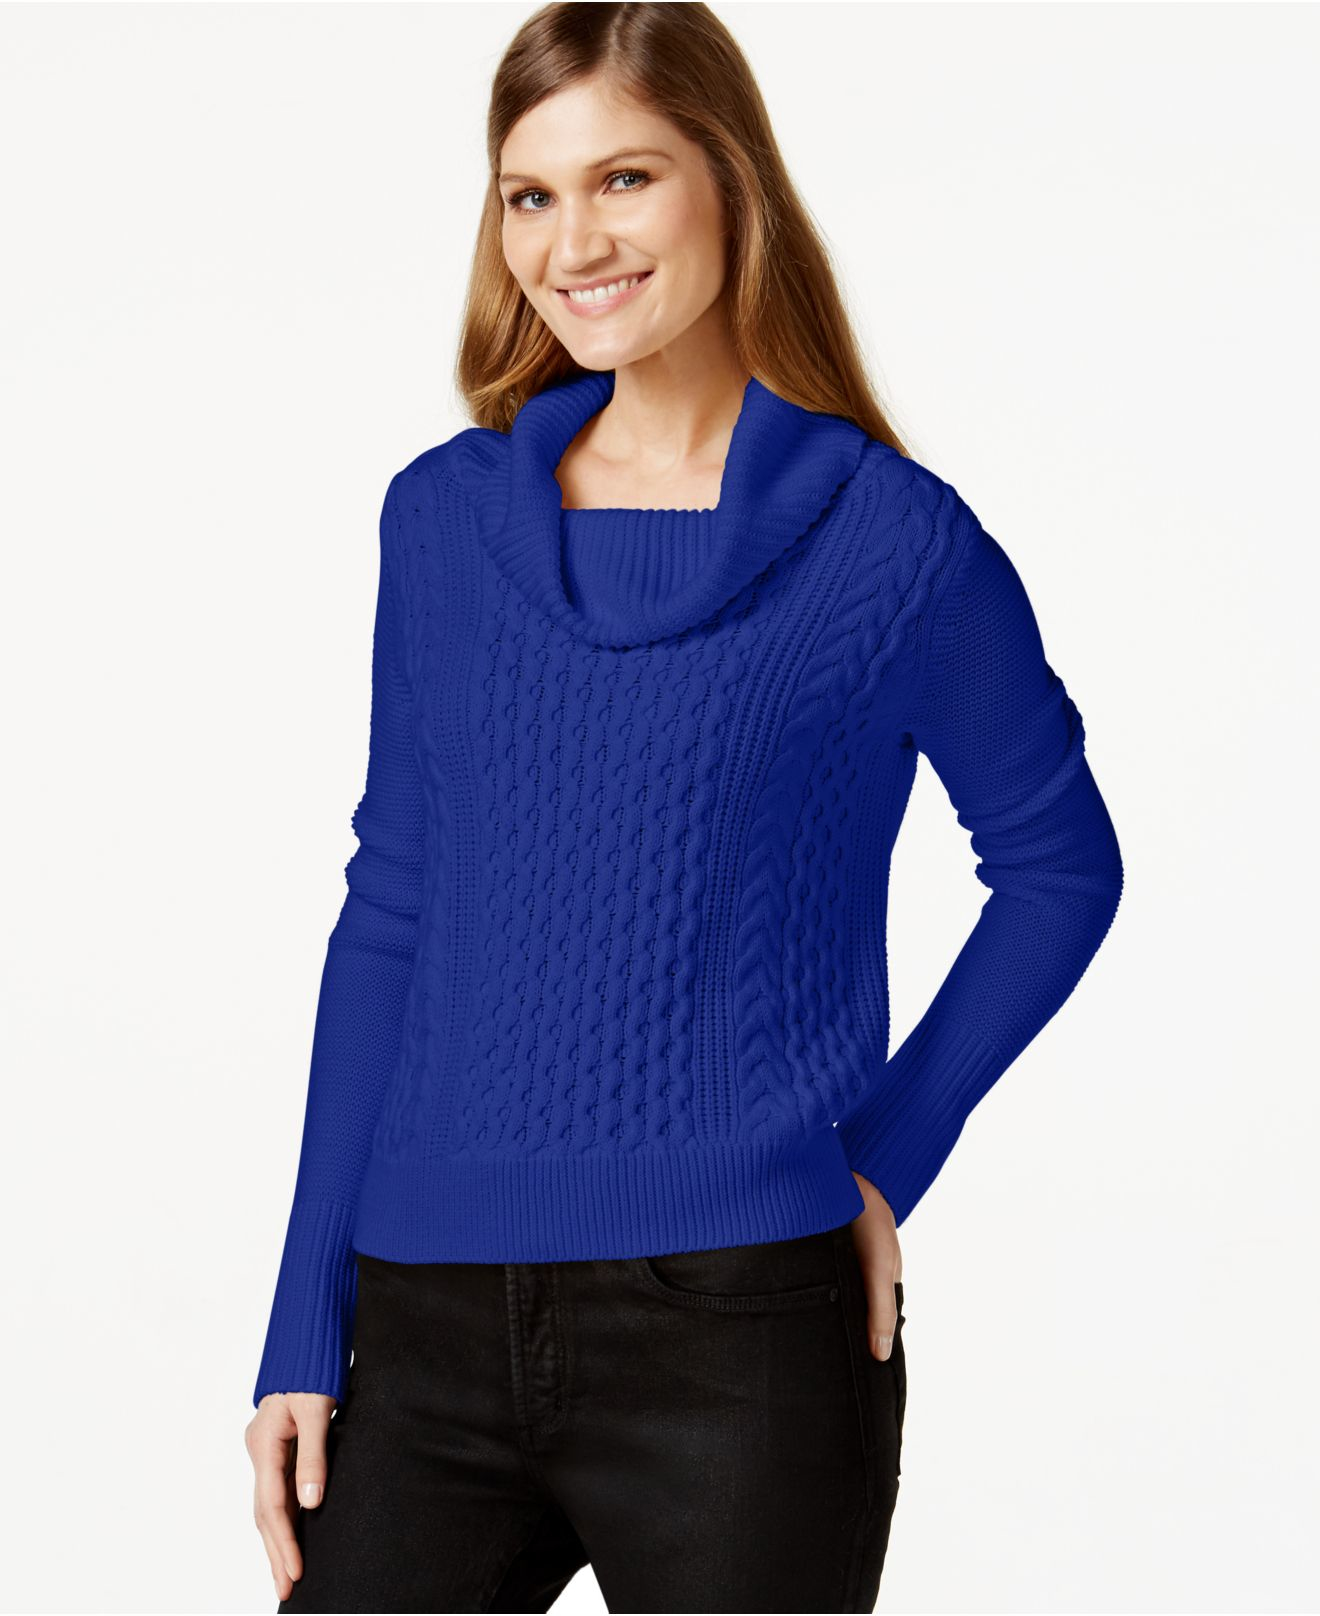 Cece by cynthia steffe Cowl-neck Cable-knit Sweater in Blue   Lyst